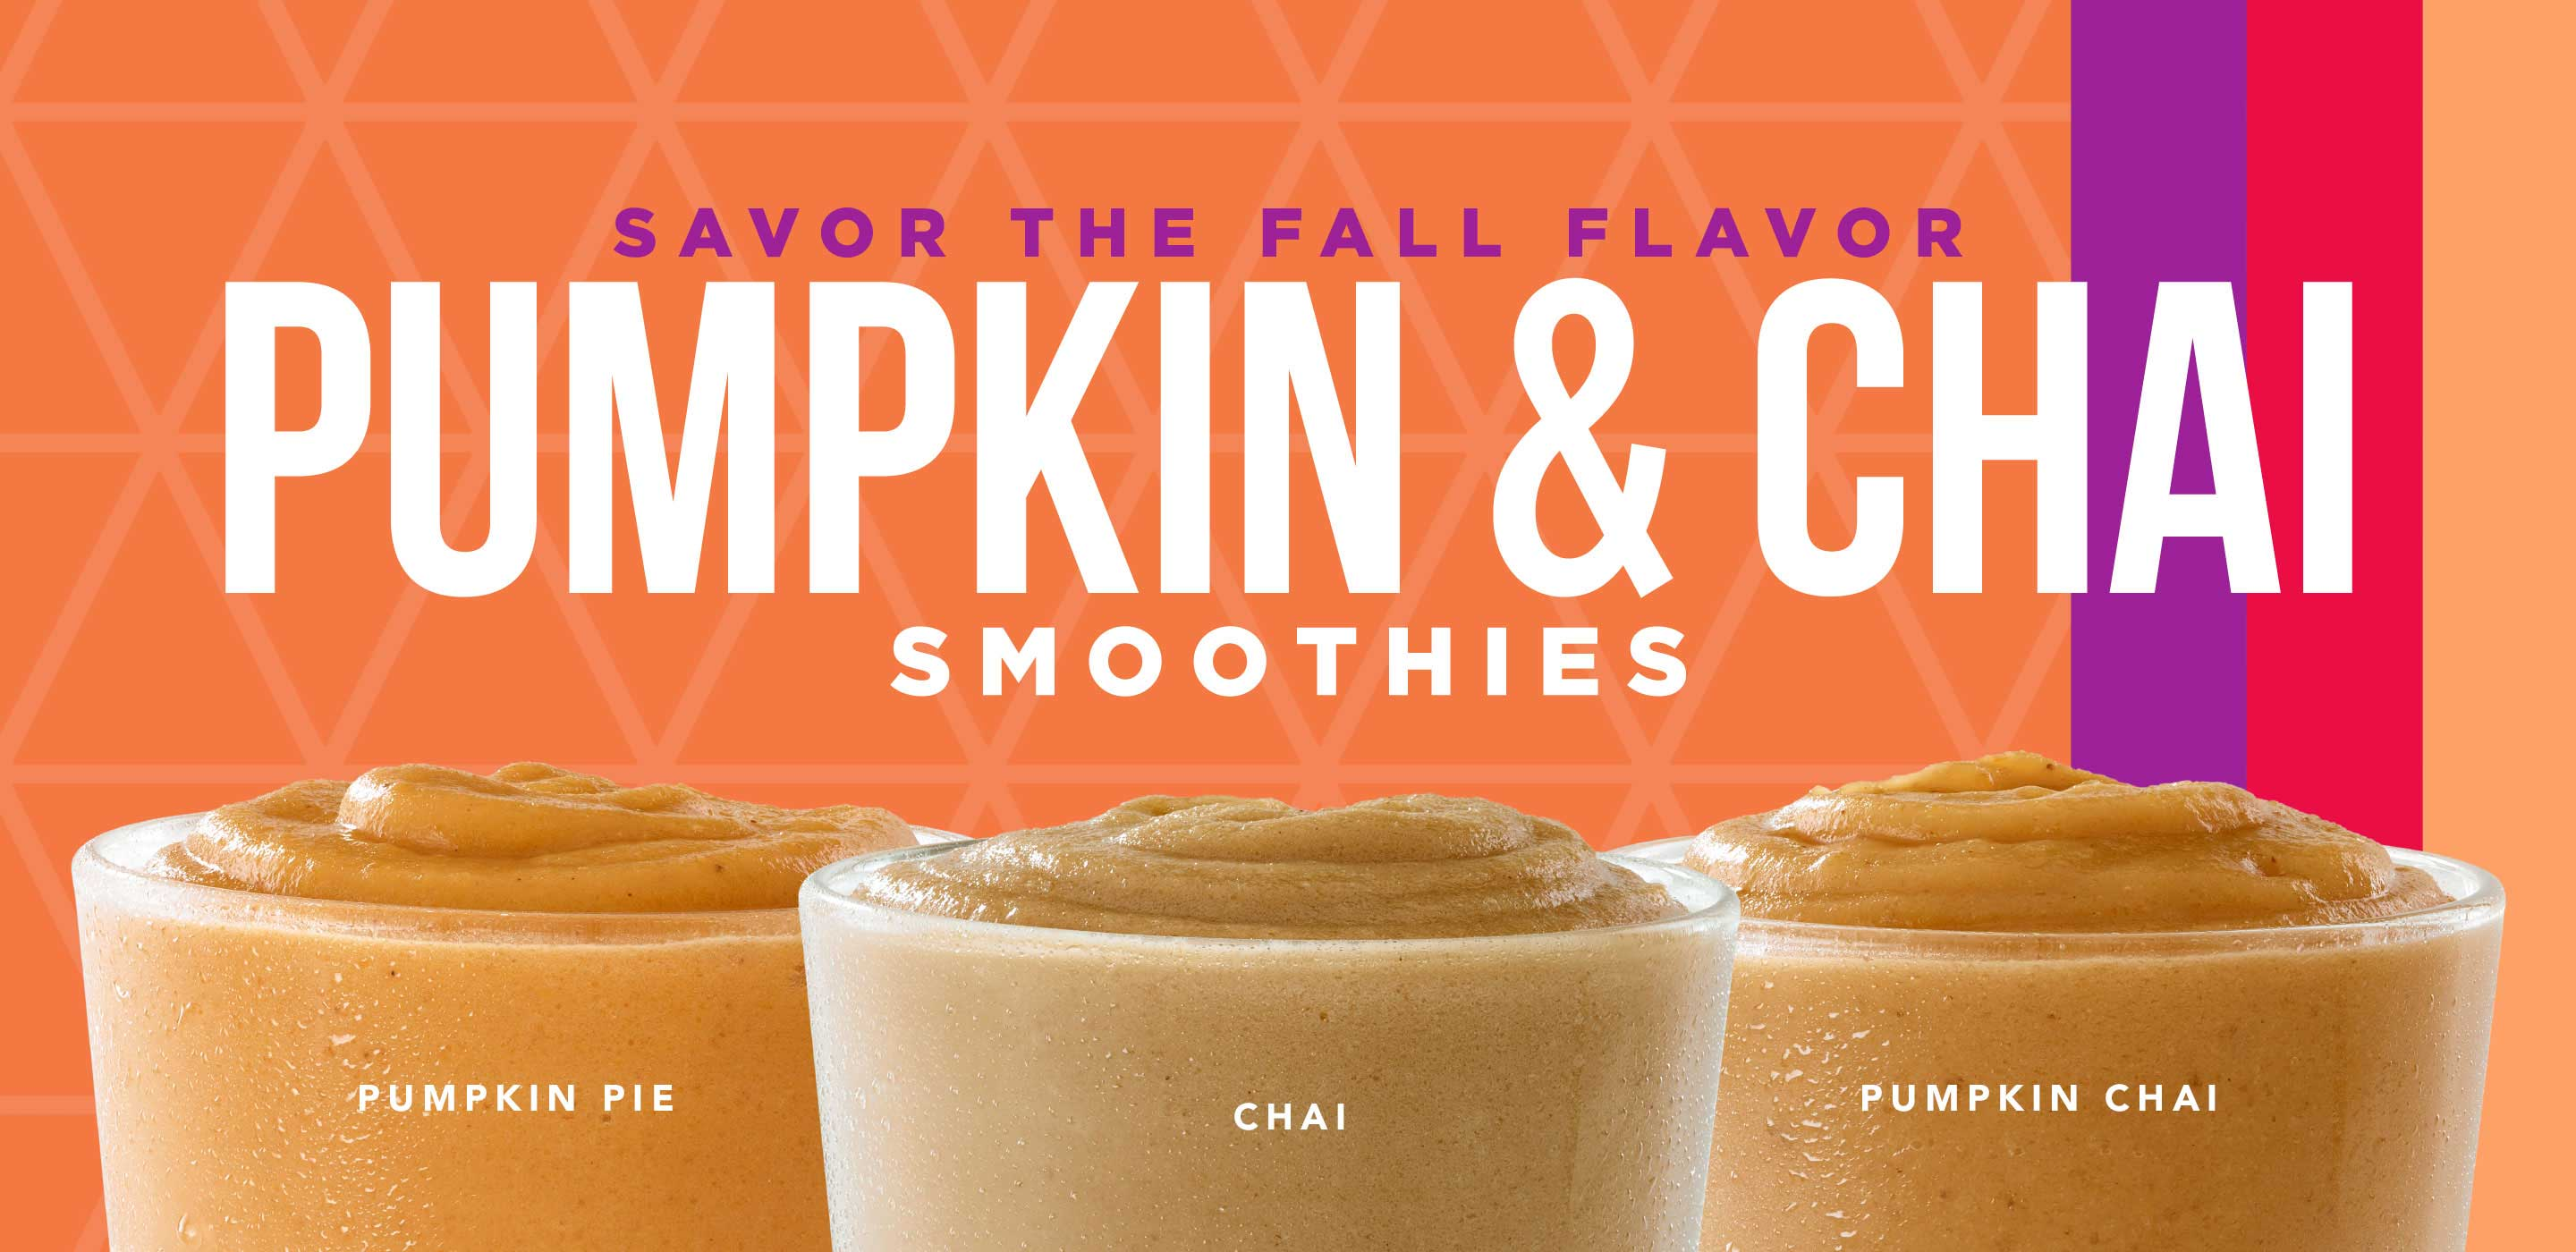 Pumpkin & Chai Smoothies